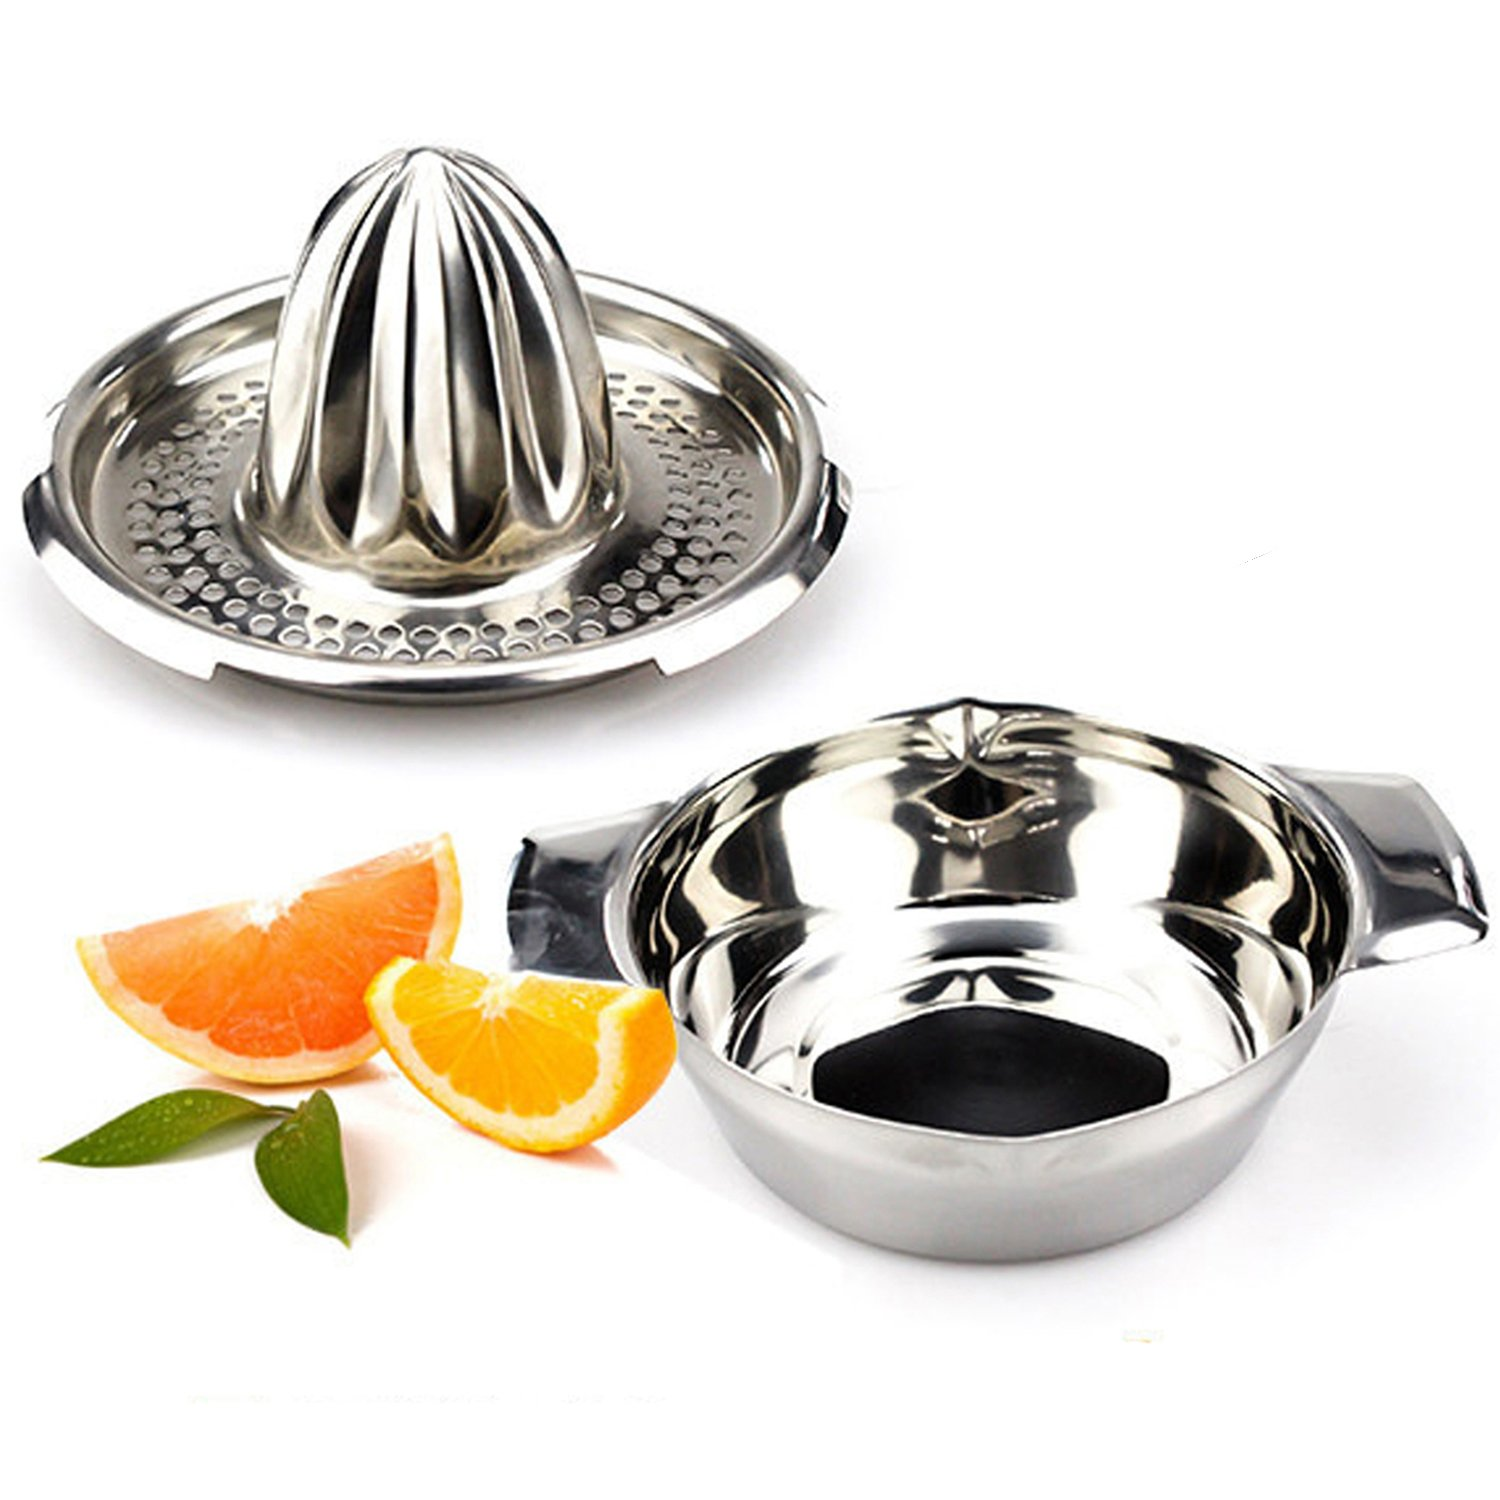 Brand New Citrus/ Orange Stainless Steel Juicer Lemon Lime Fruit Hand Squeezer Kitchen Tool The Best Kingdom